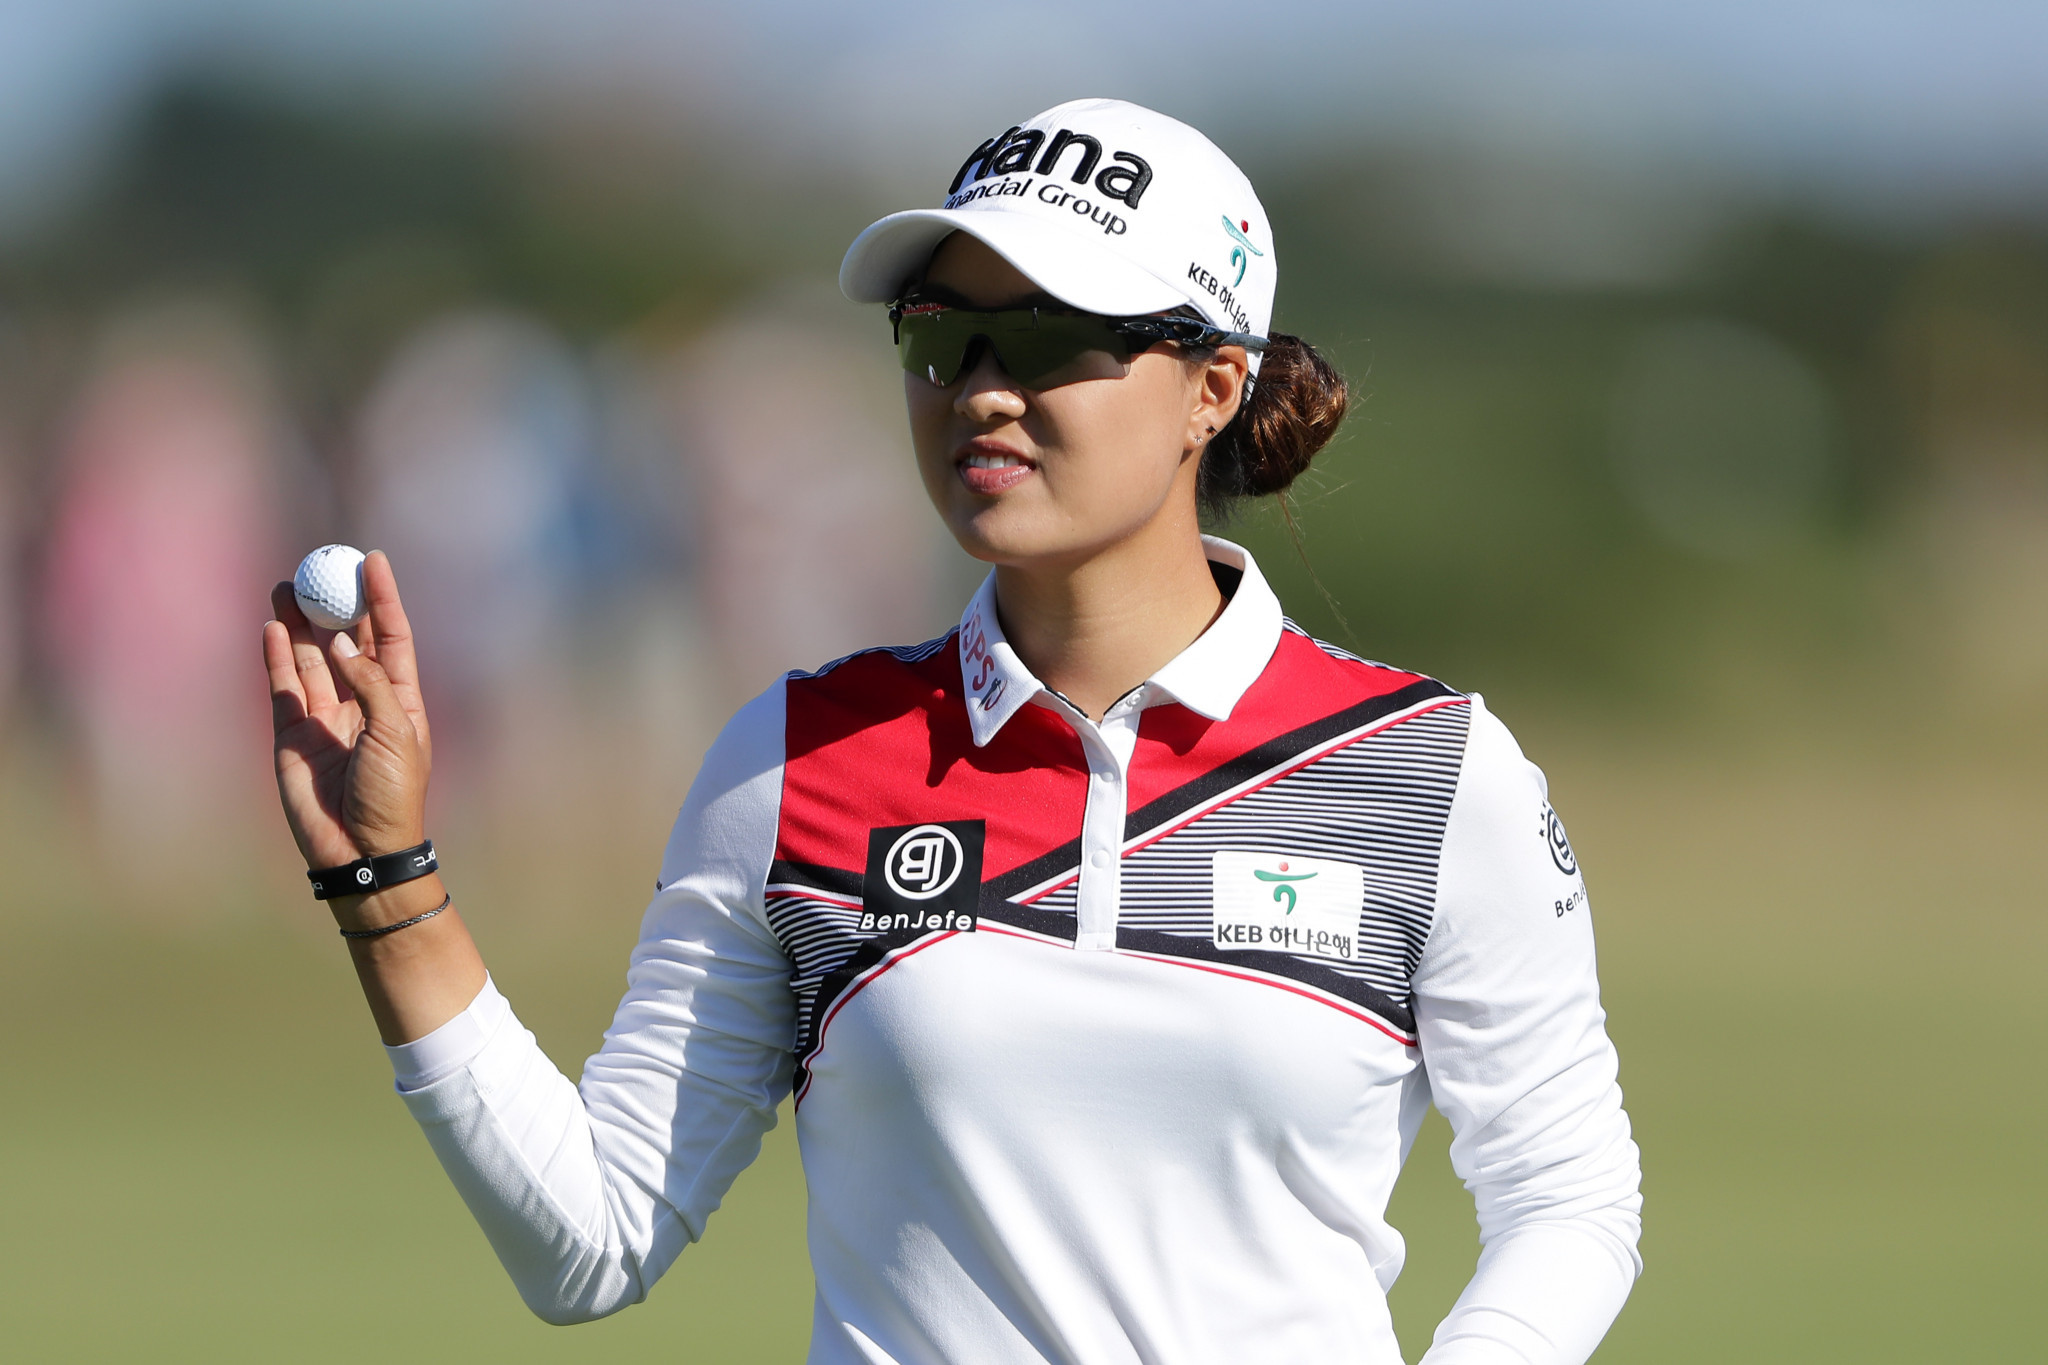 Australia's Minjee Lee is the clubhouse leader after day one of the Women's British Open ©Getty Images